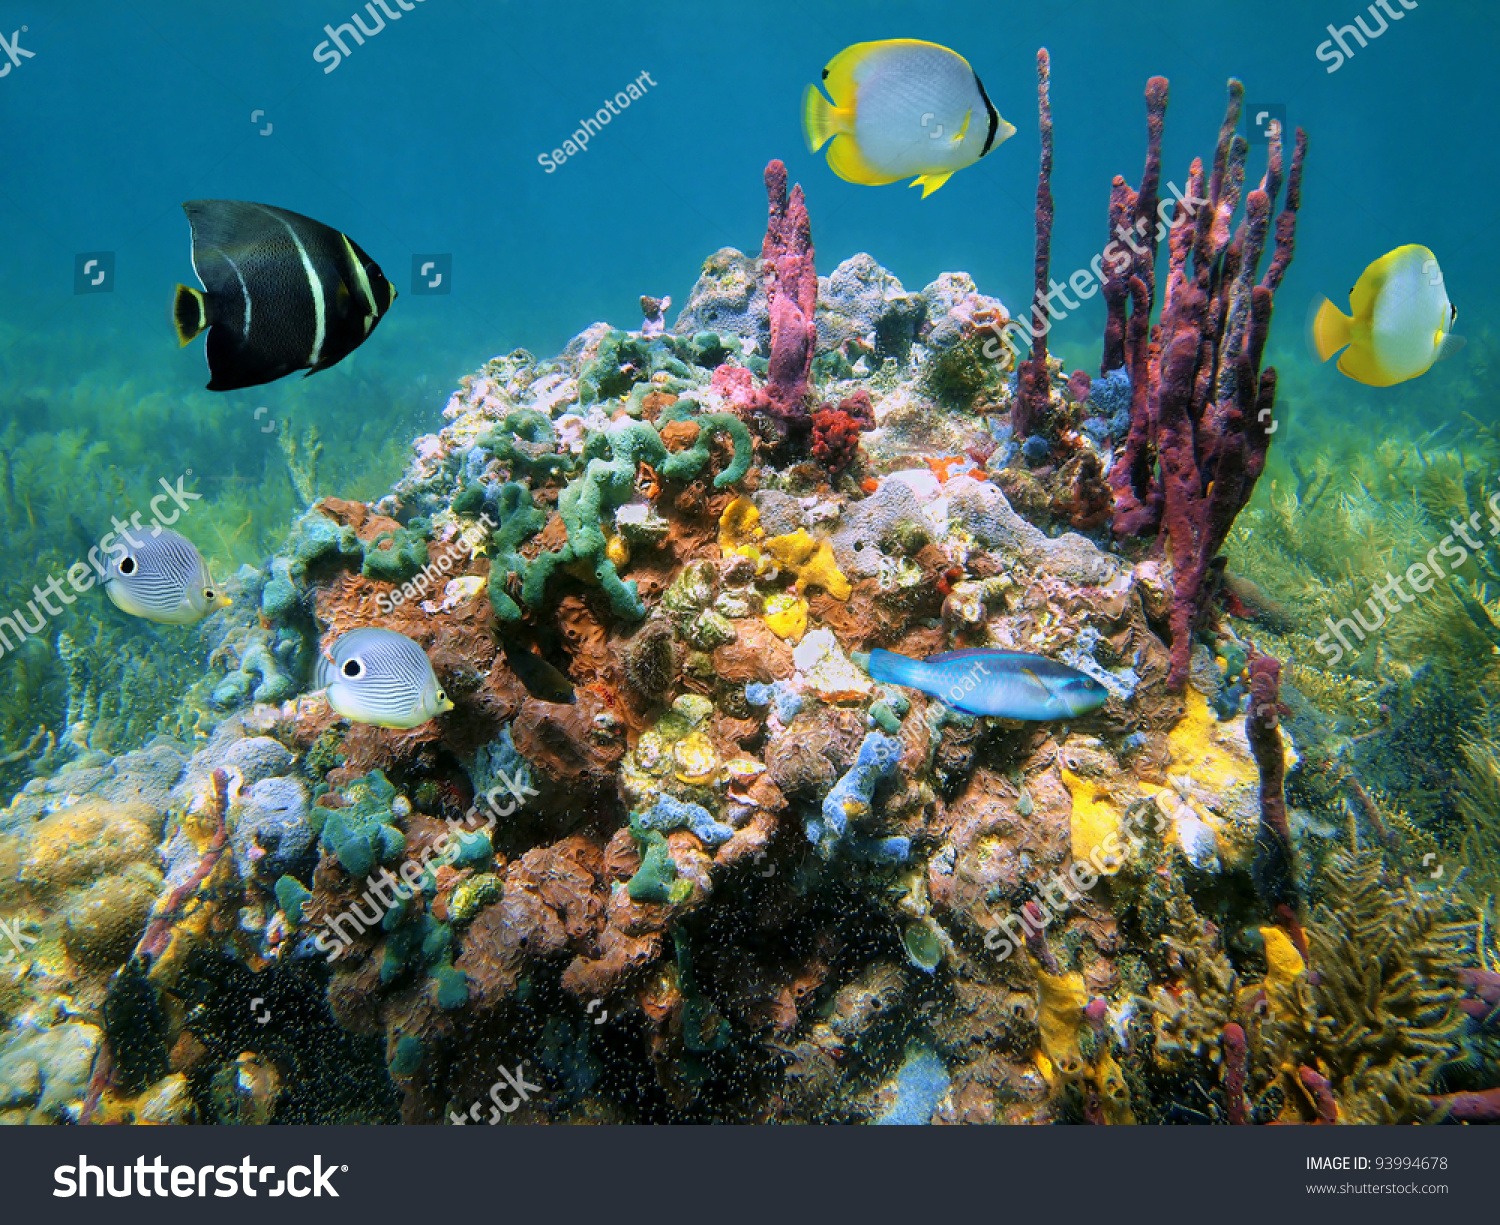 Colorful Sea Life Underwater With Sponge And Coral Stock ... |Colorful Underwater Life